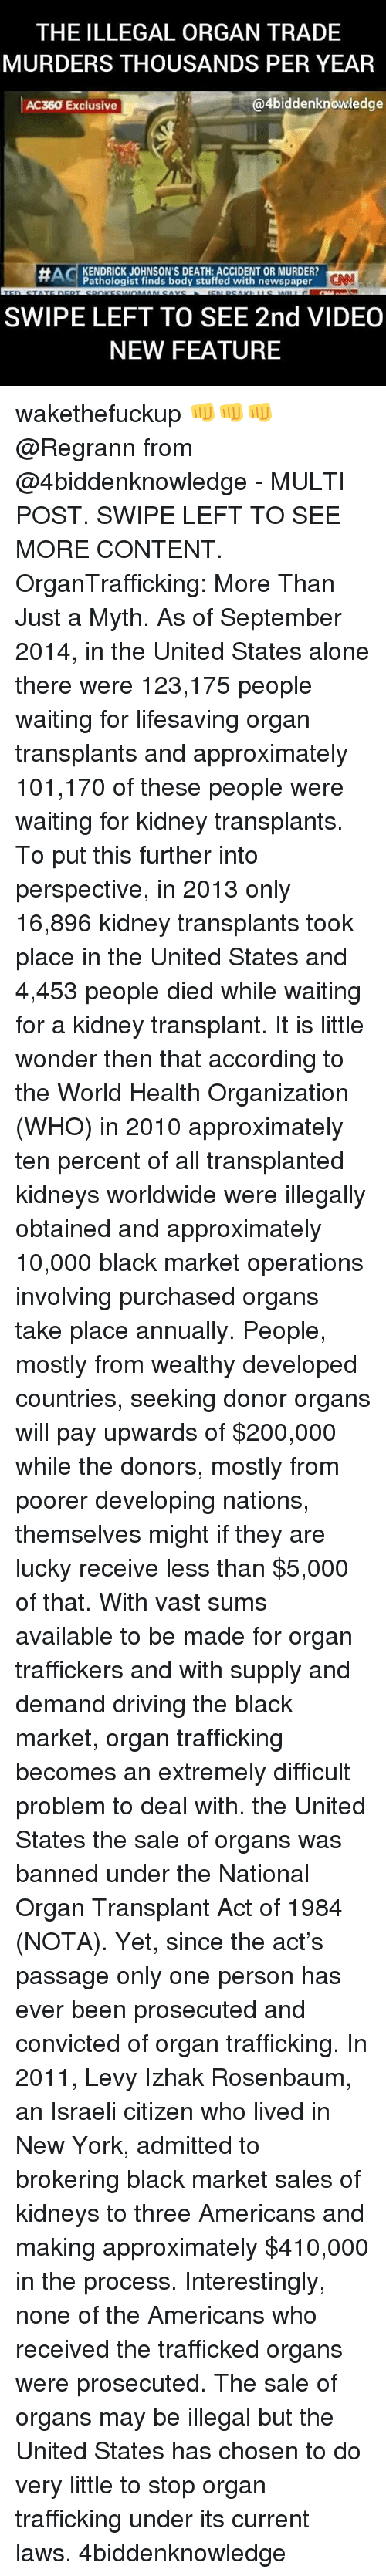 illegal organ trade essay The organ trafficking market is on the rise worldwide numerous unfortunate stories of networks of brokers, physicians, and hospitals engaged in illegal trade have been featured in high-profile media.